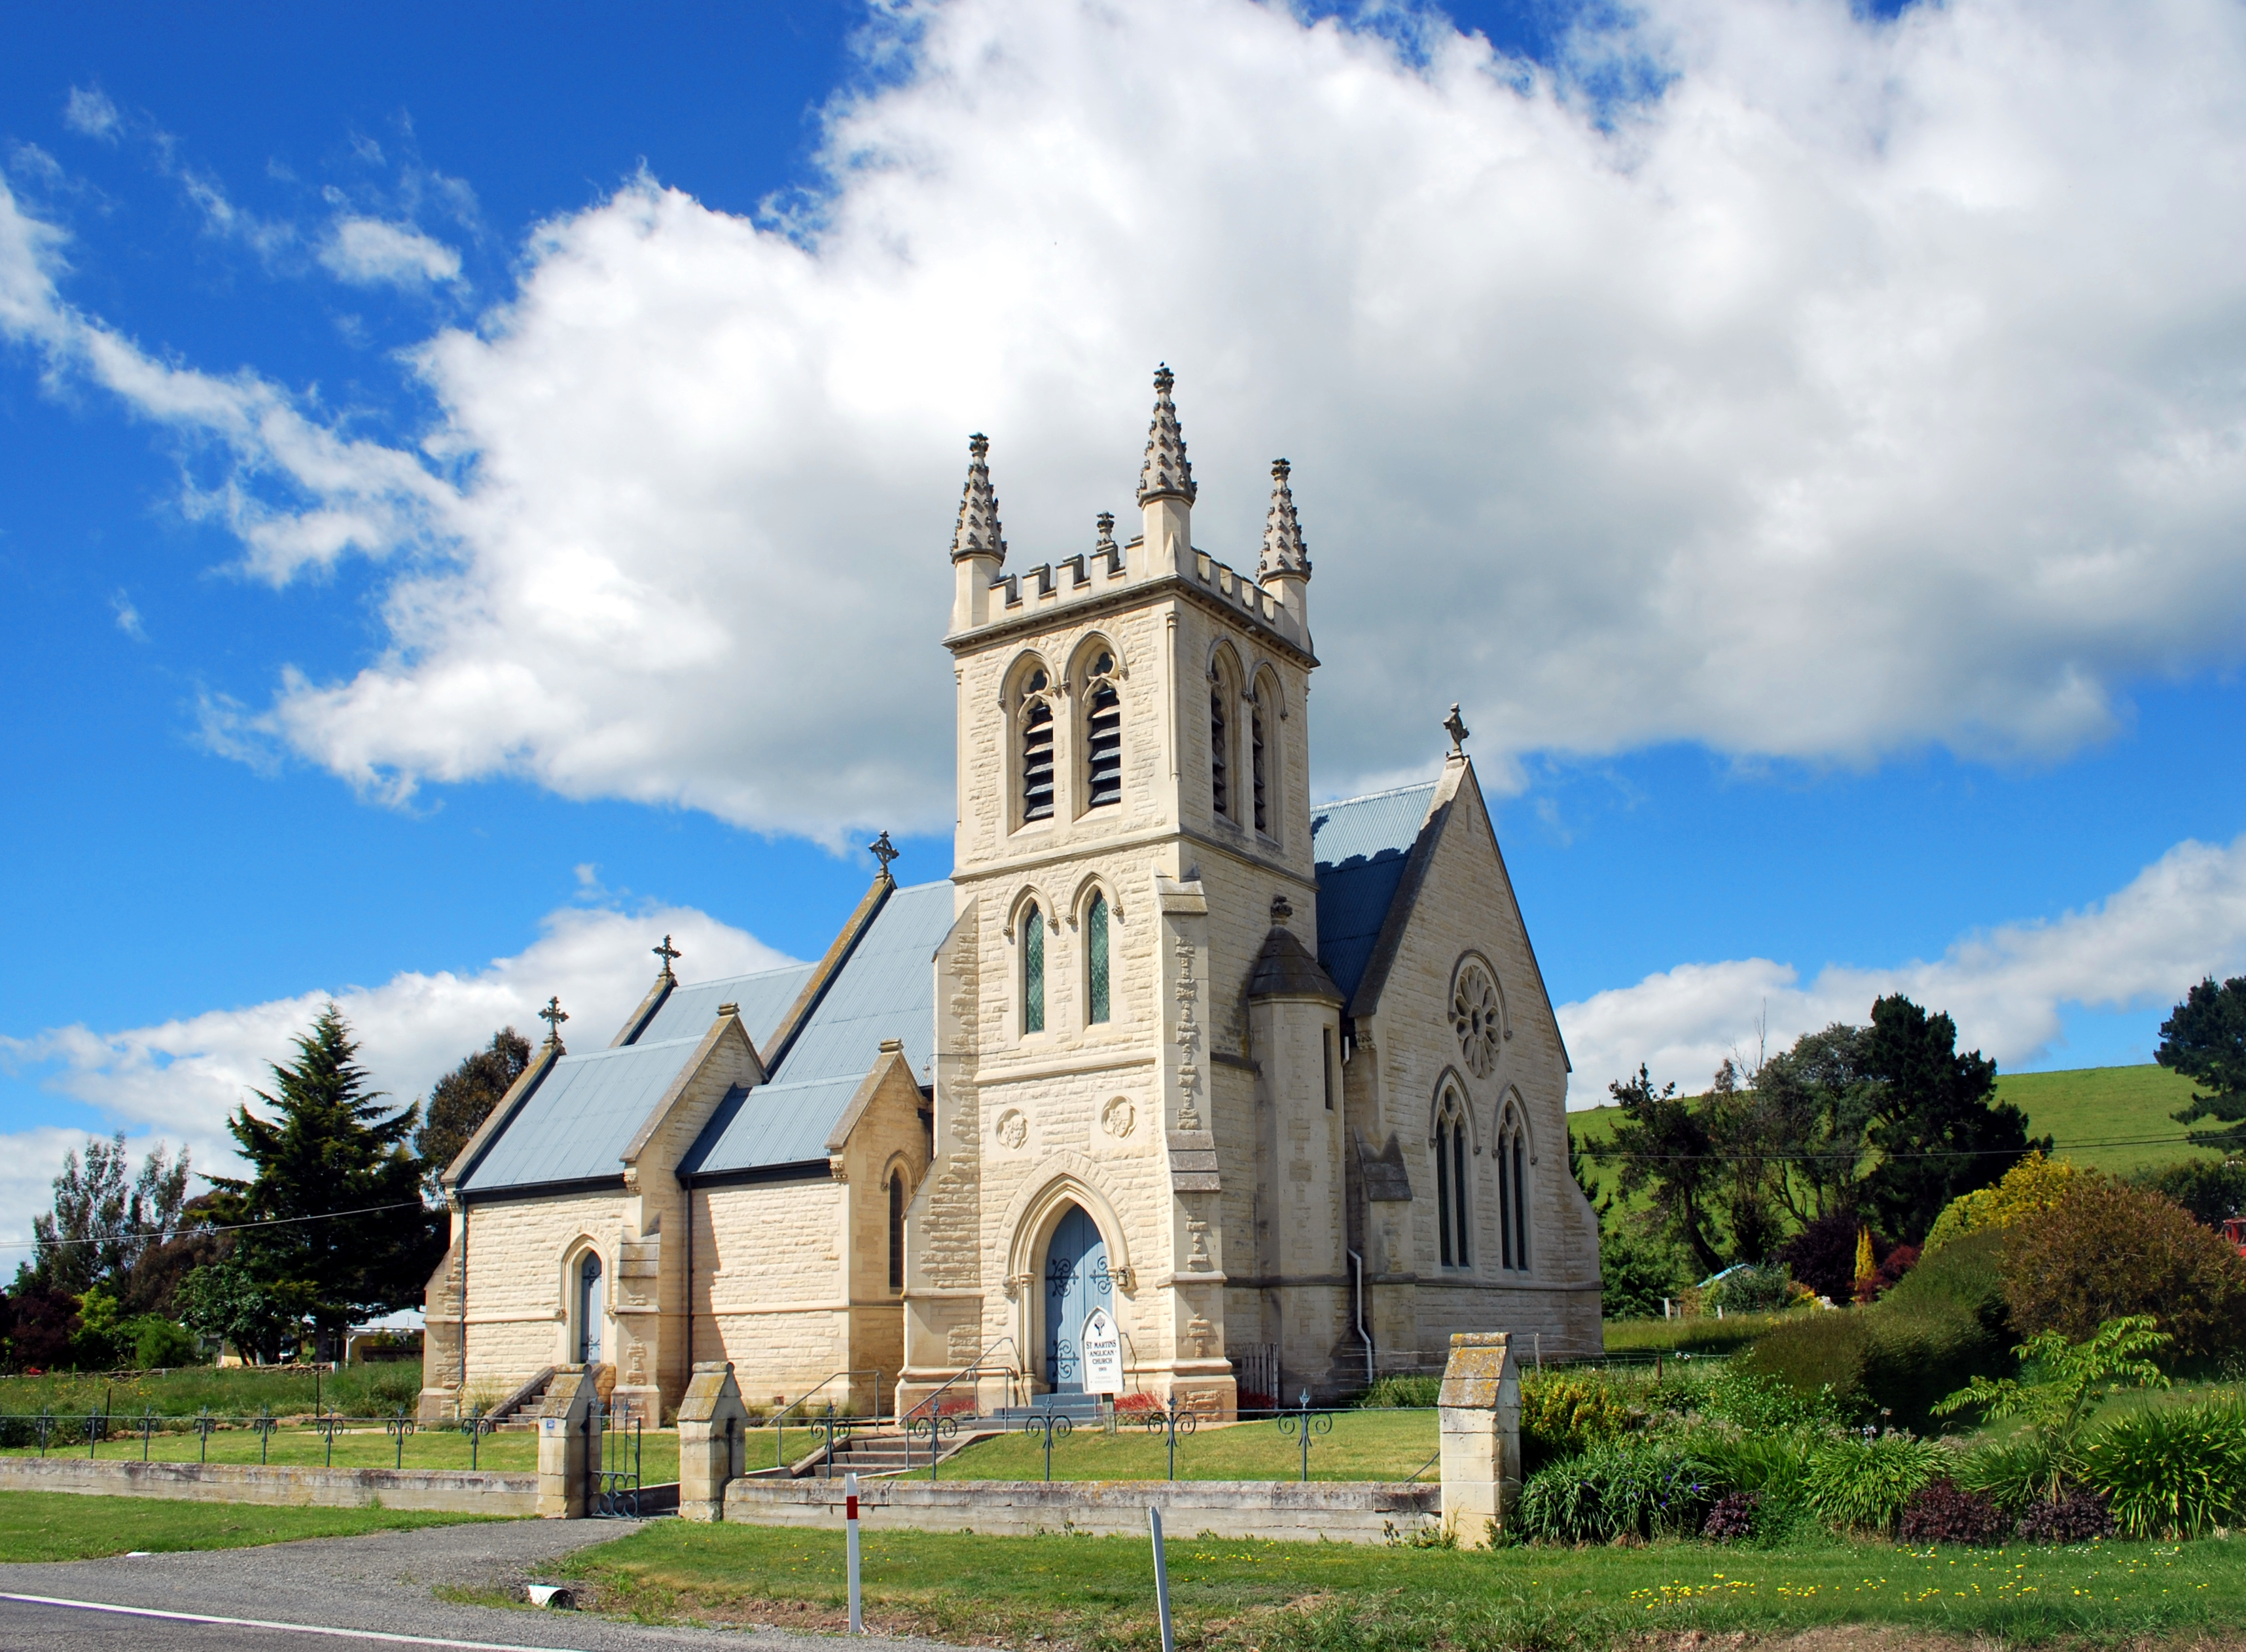 file:duntroon anglican church 003 - wikimedia commons